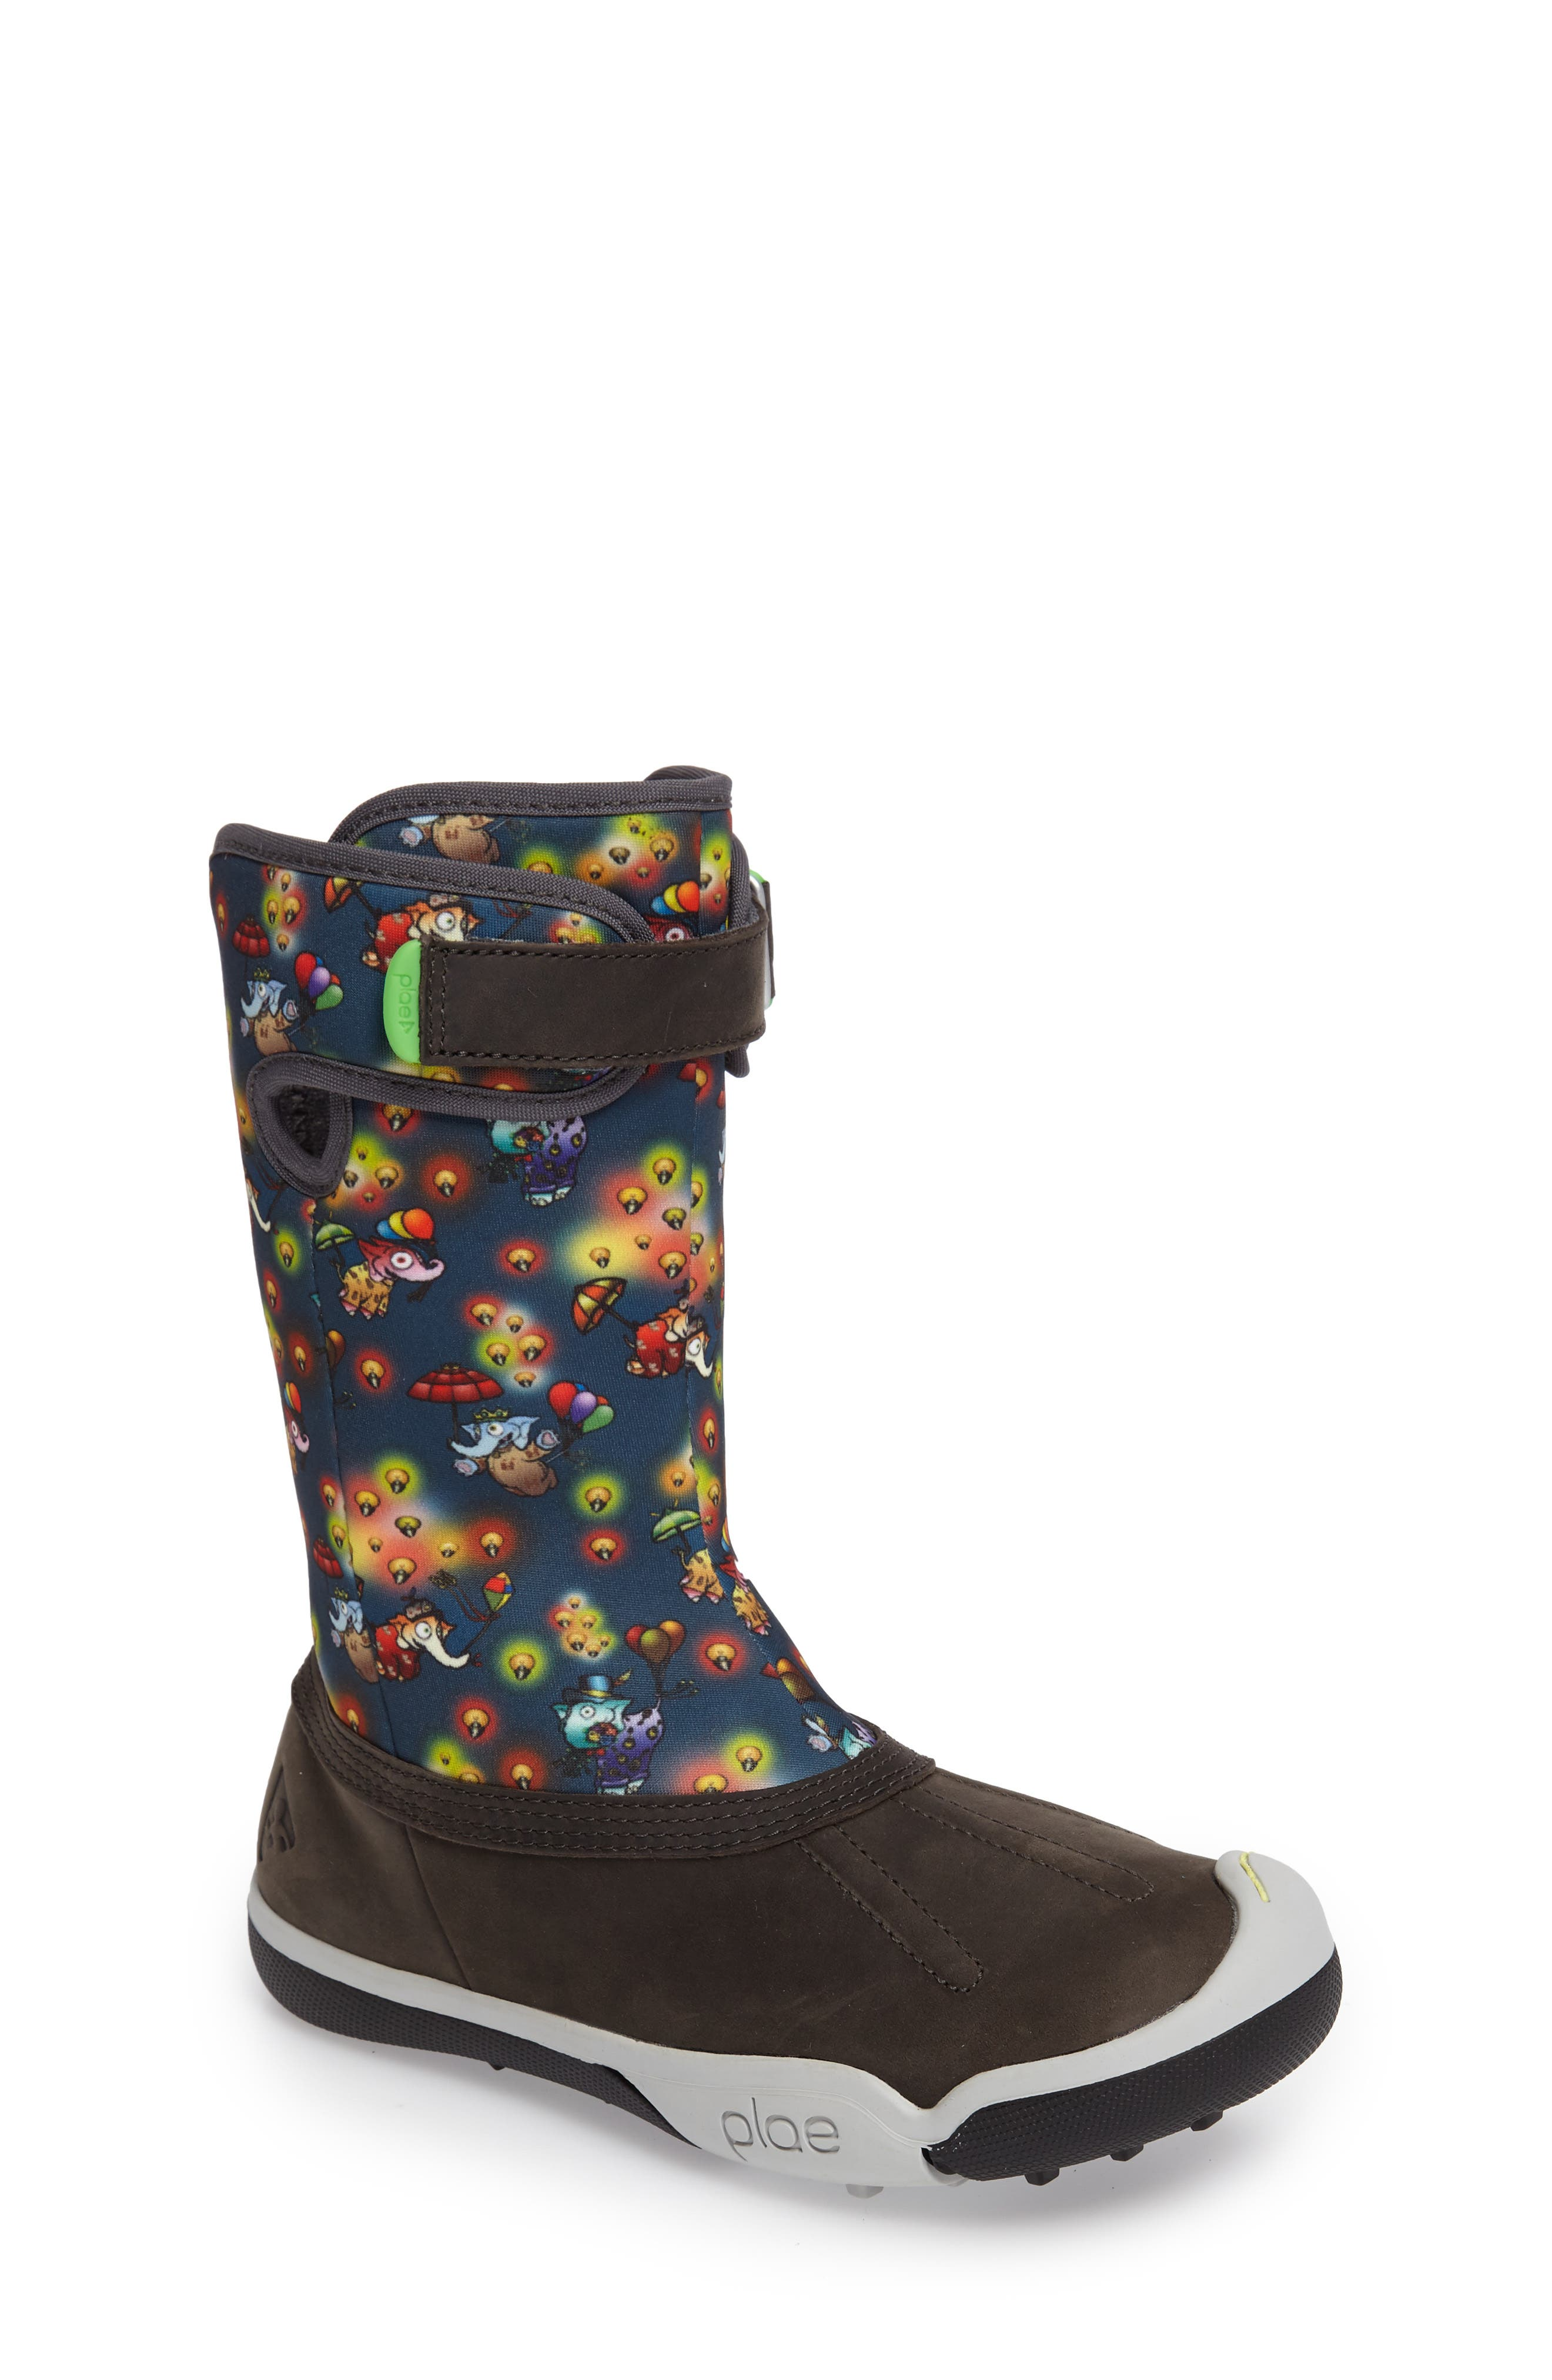 PLAE Thandi Customizable Rain Boot